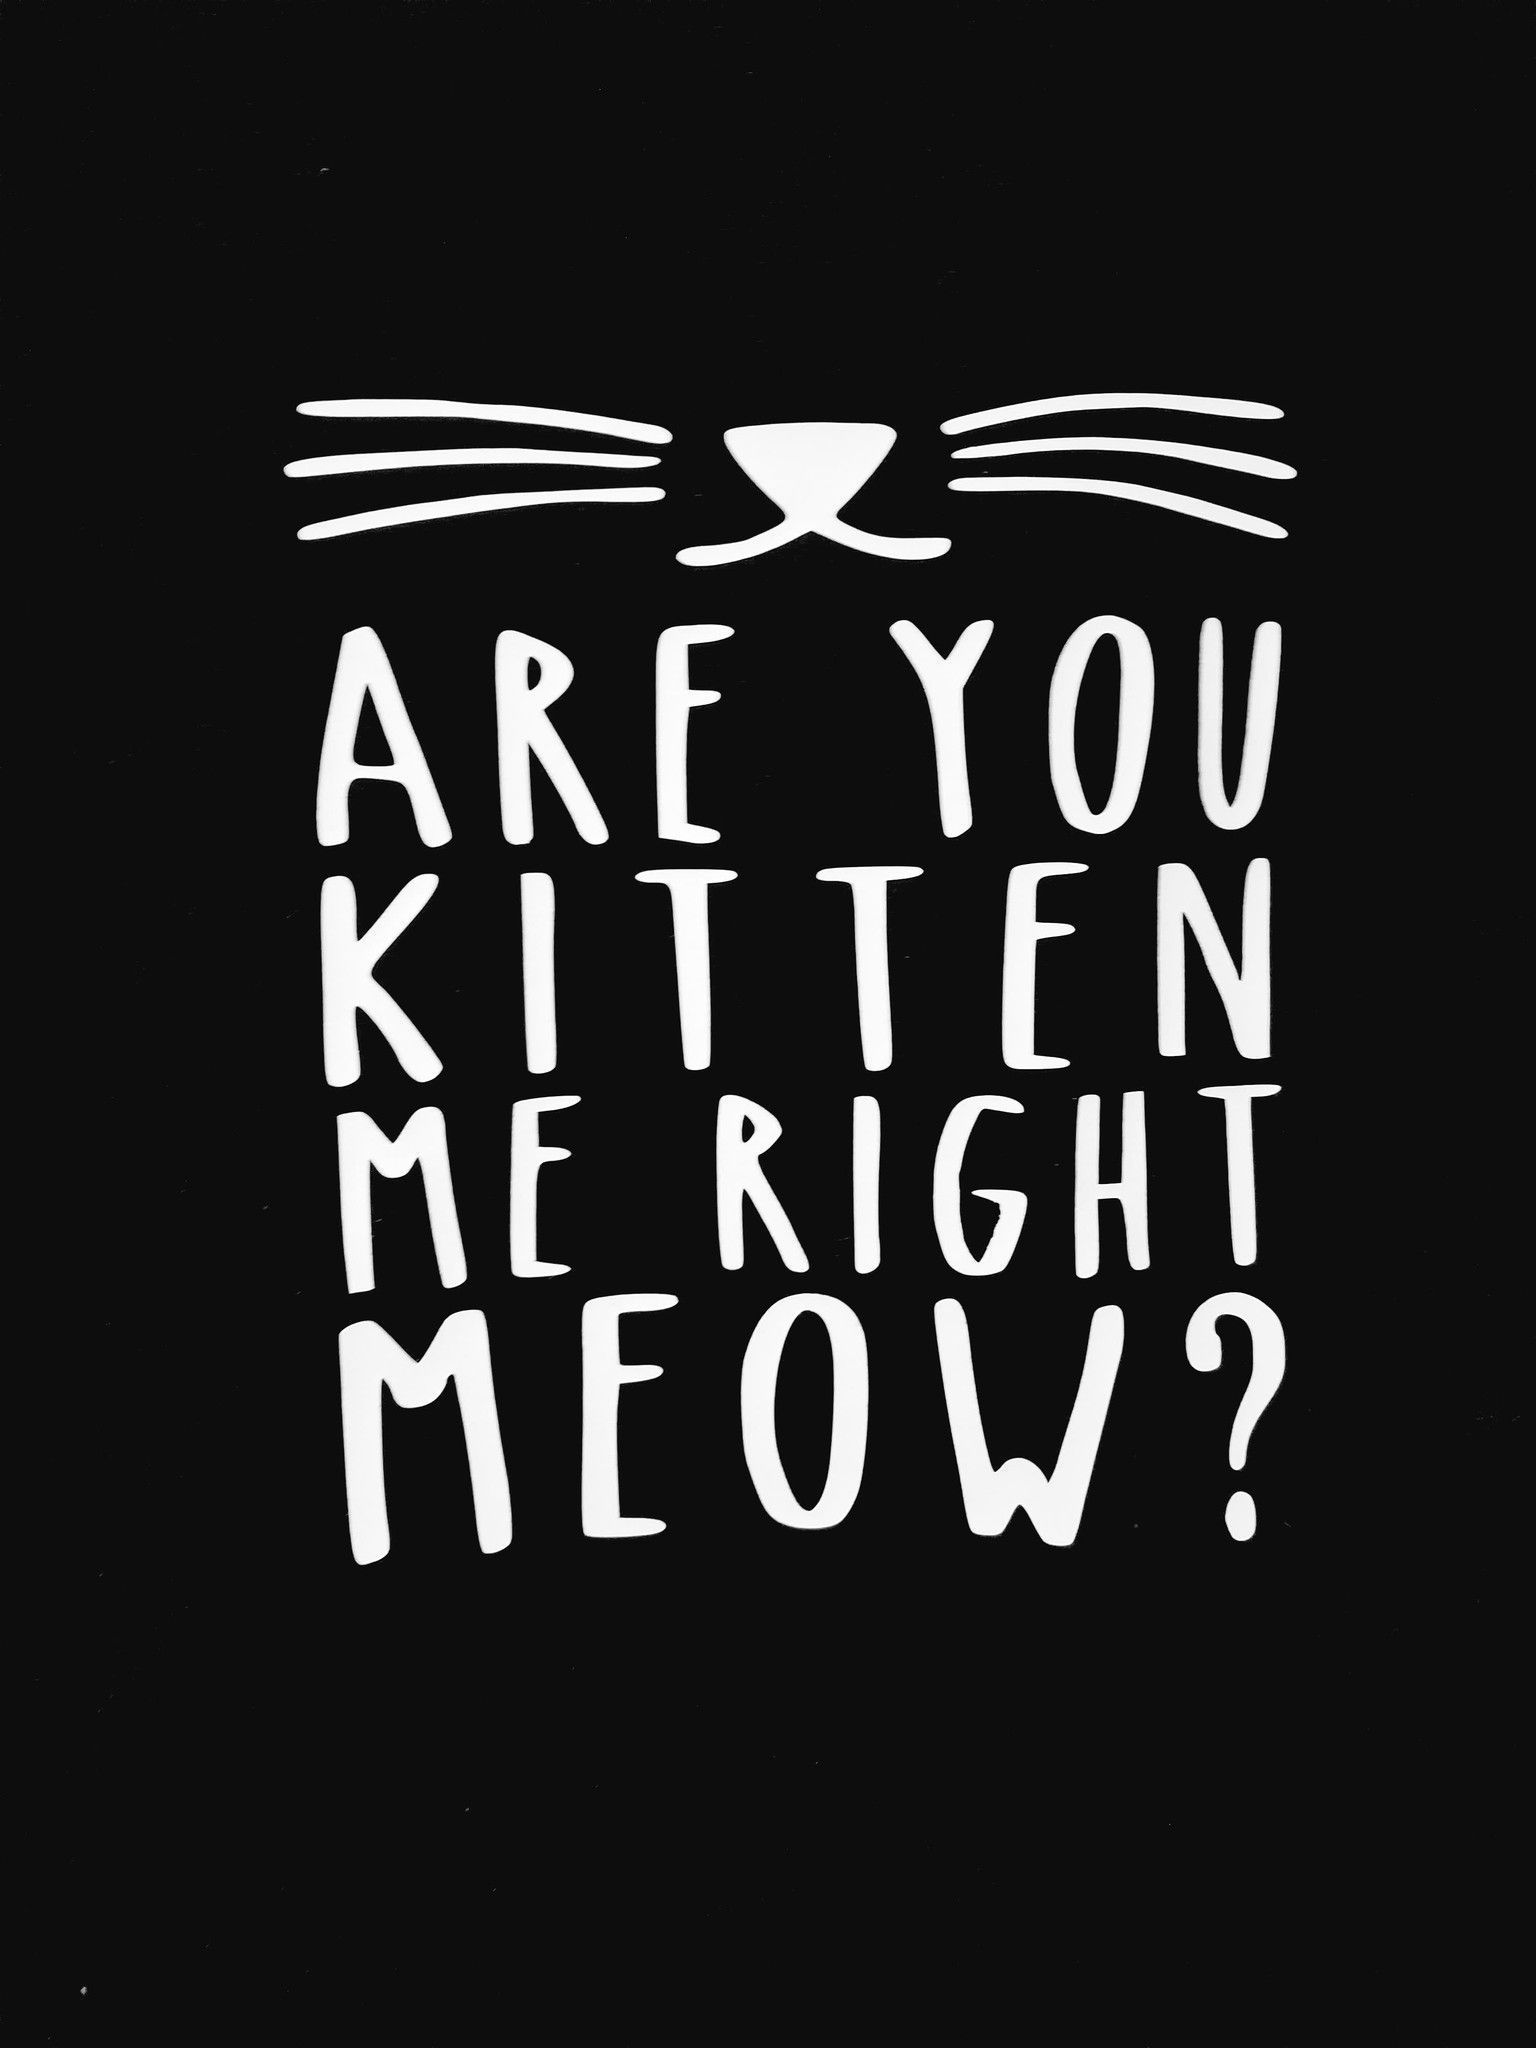 Are You Kitten Me Right Meow Shirt Cat Tshirt Cat Tee Cat Cat Shirt Novelty Shirt Funny Shirts Statement T Cat Shirts Funny Cat Shirts Cat Tshirt Design